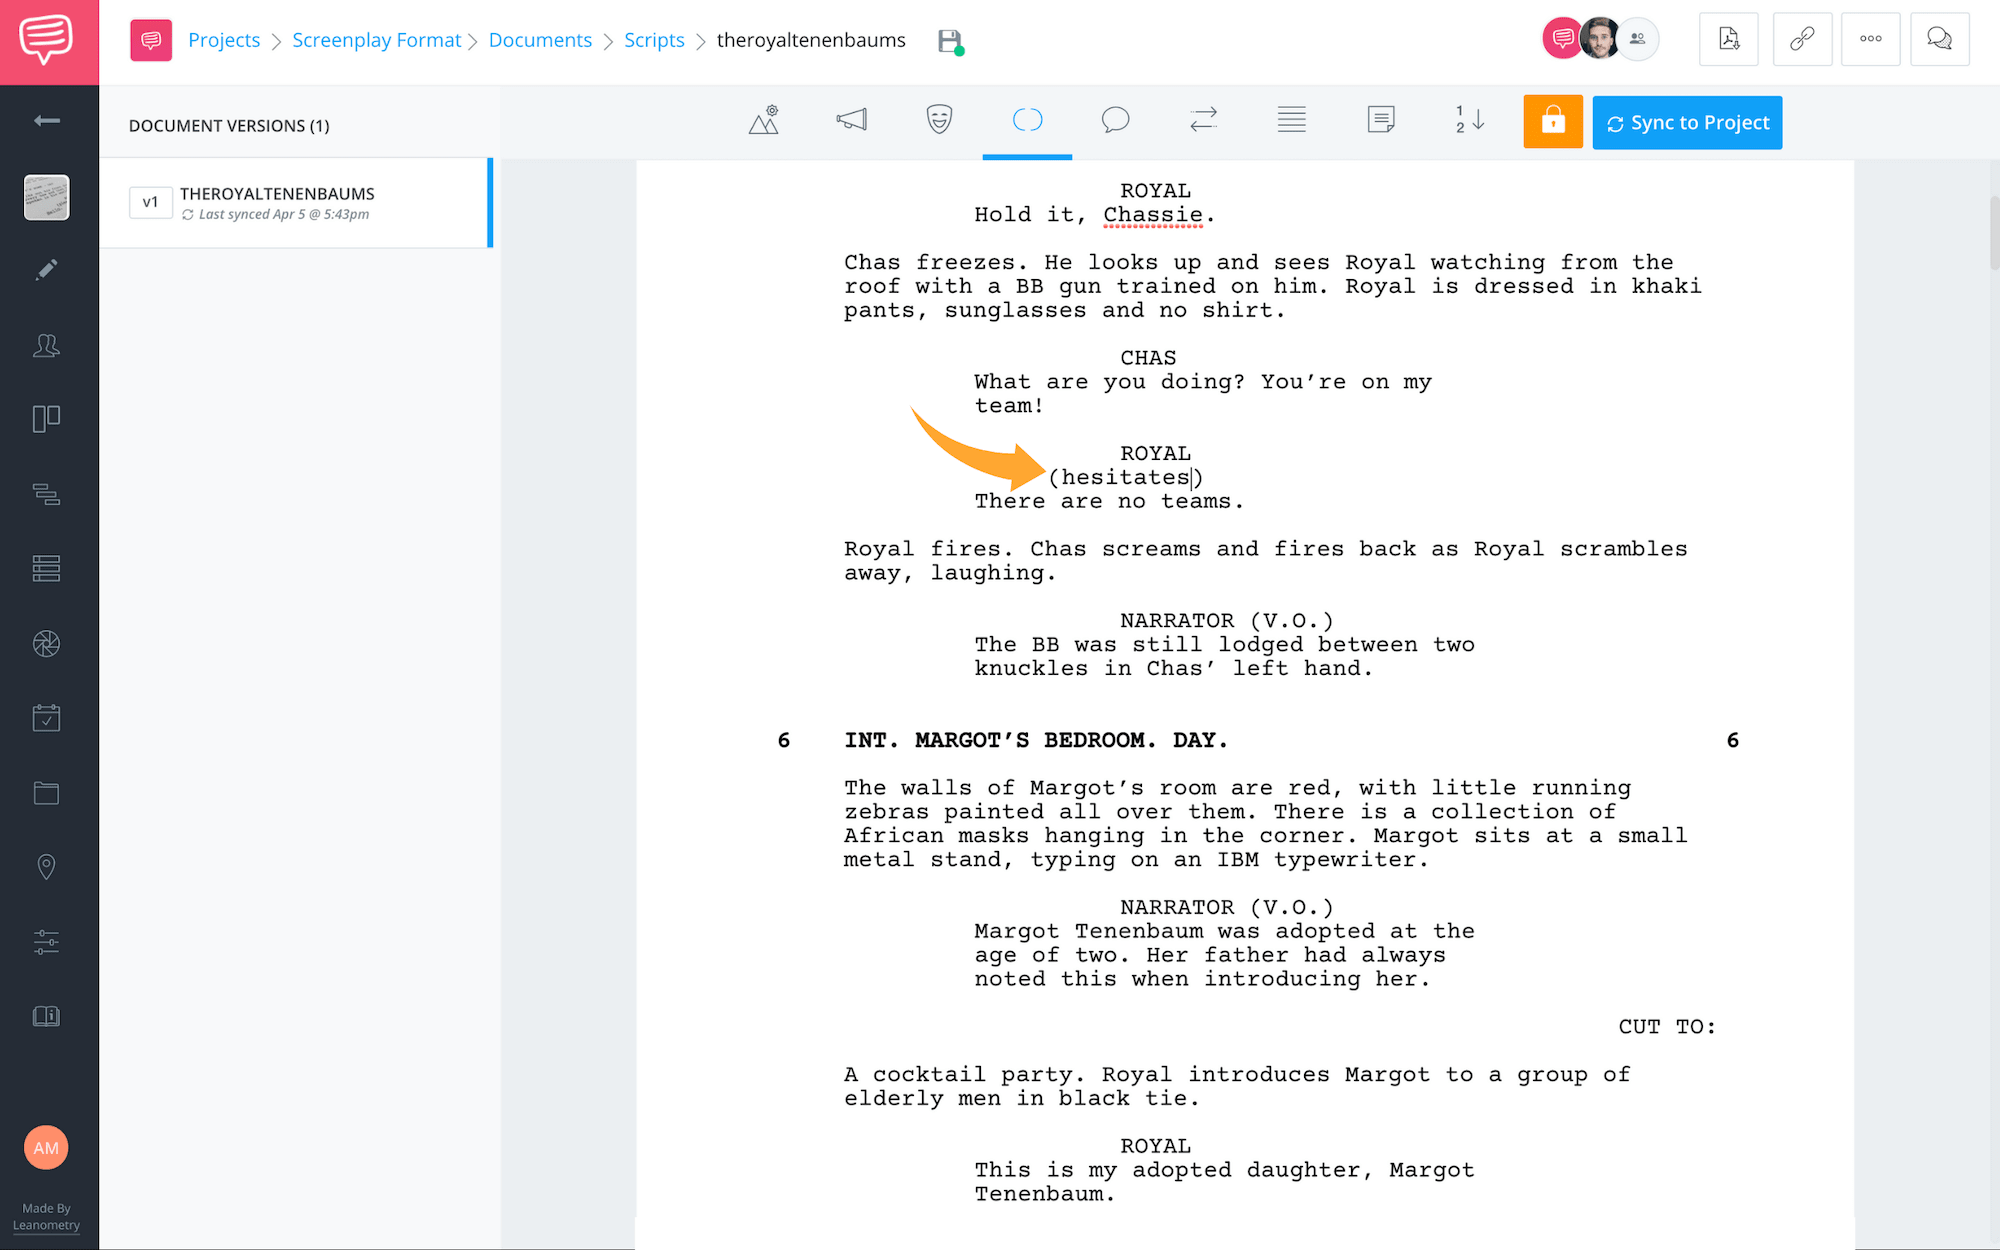 Formatting a Screenplay - Screenplay Format - Parentheses - StudioBinder Screenwriting Software